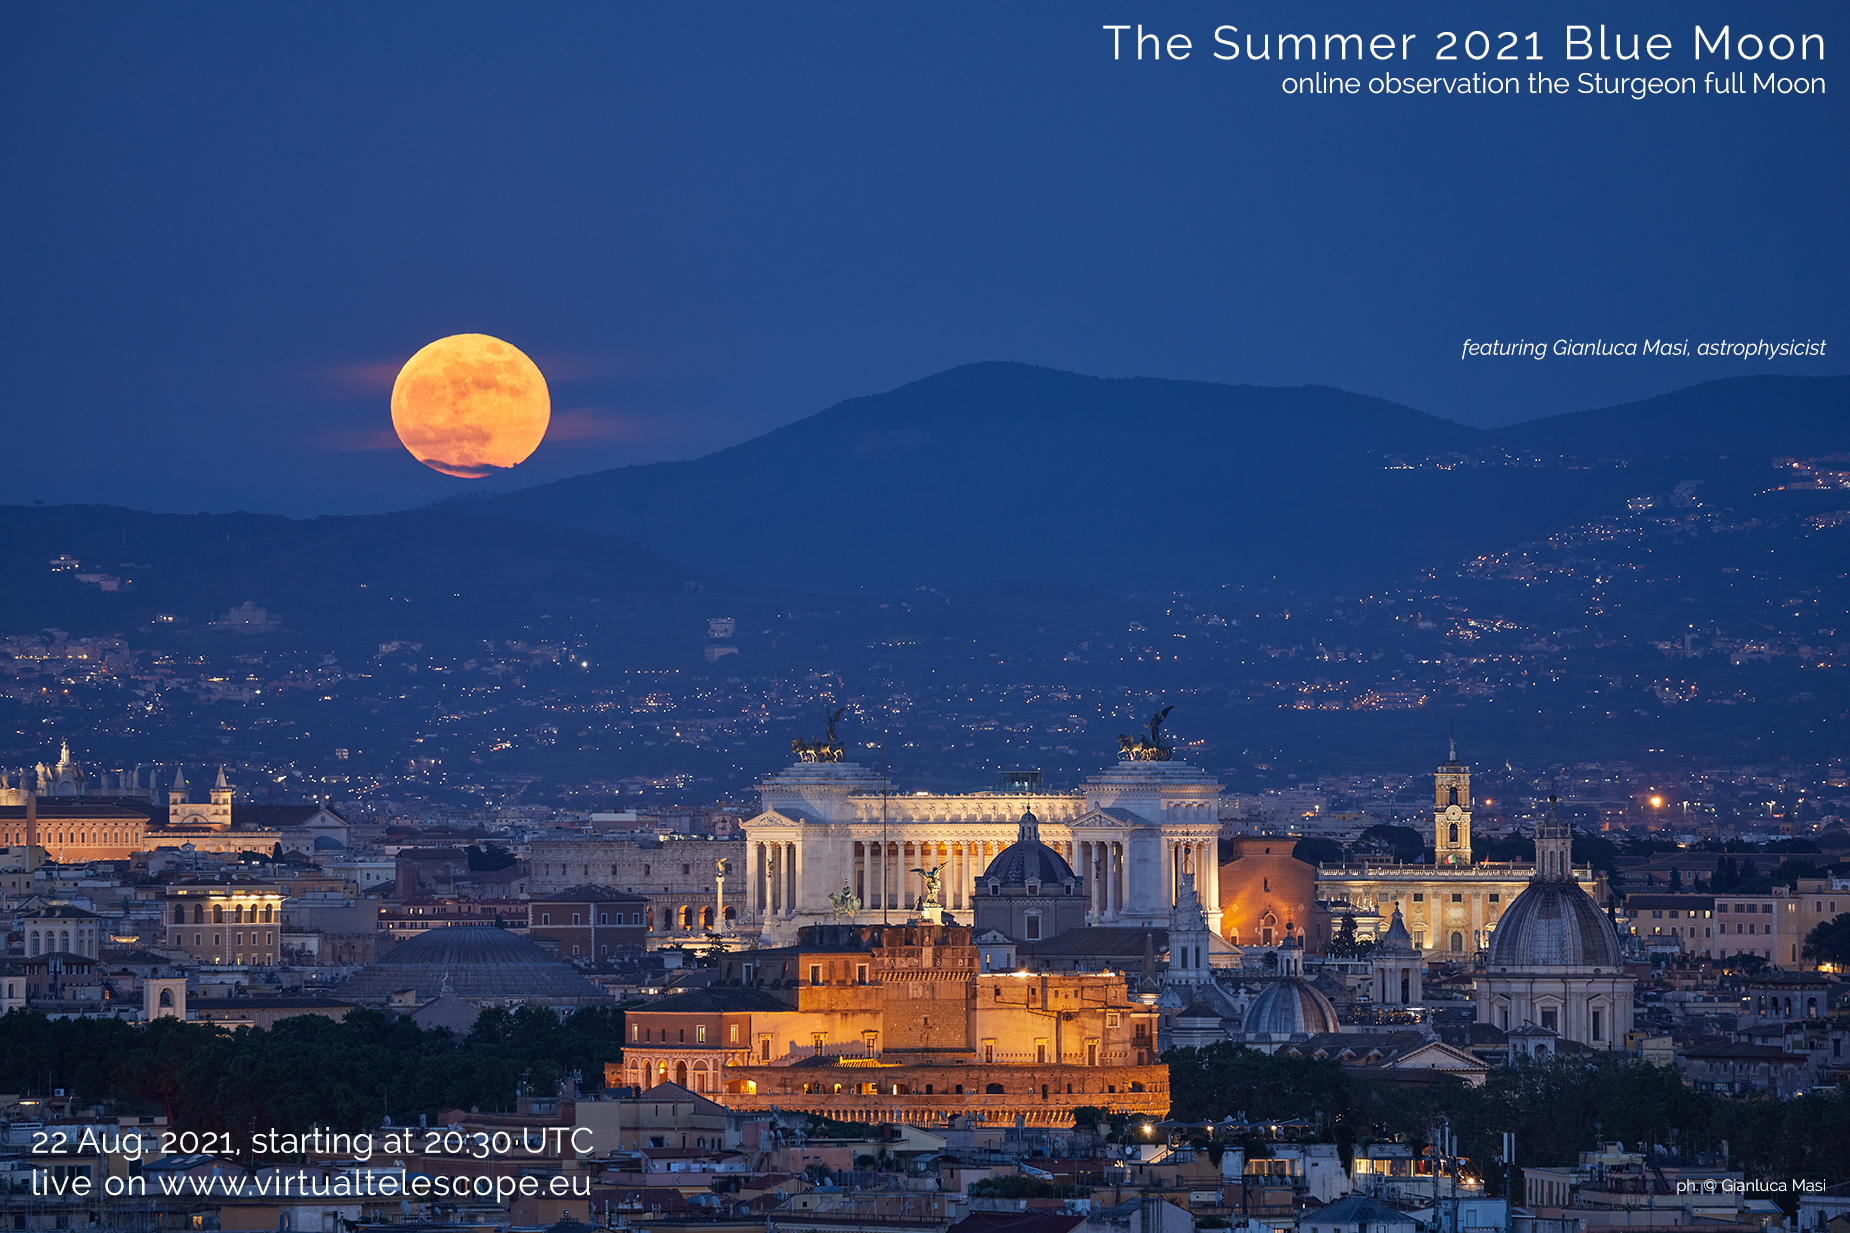 The Aug. 2021 Blue Moon: poster of the event